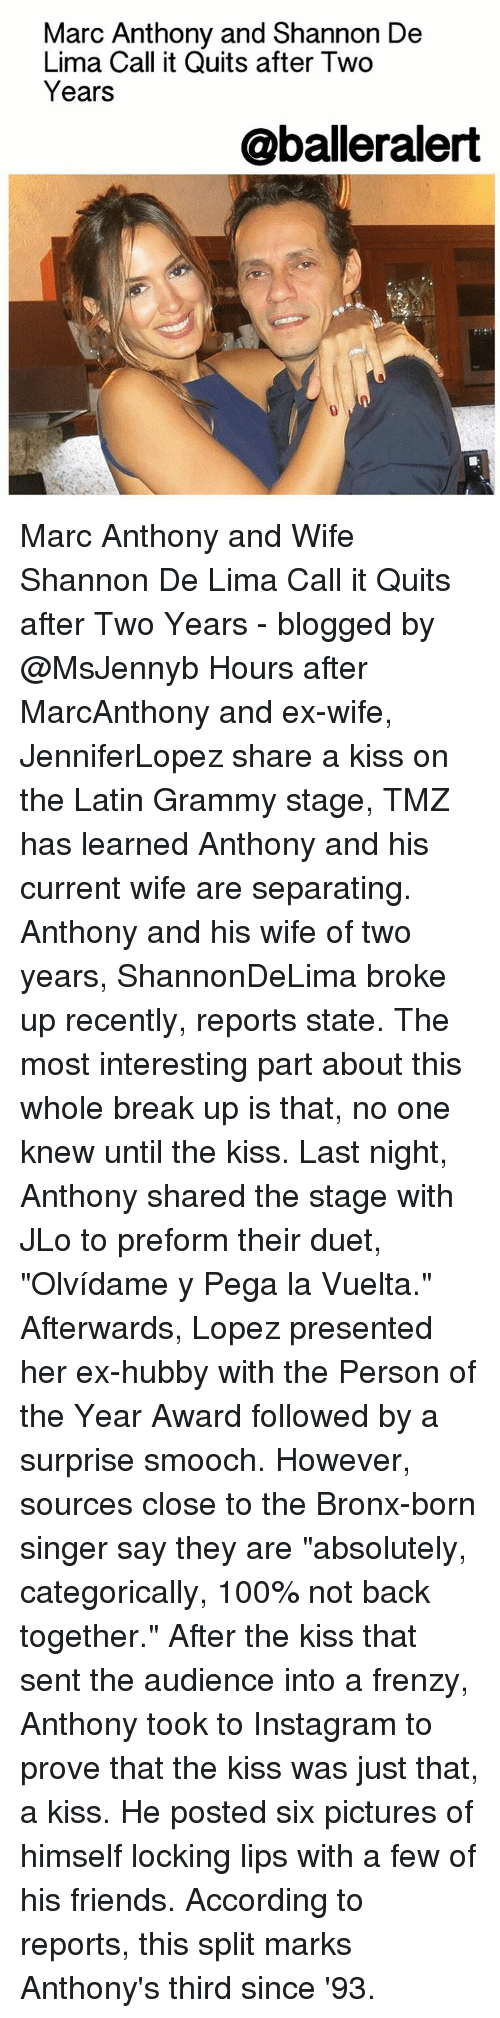 Marc Anthony and Shannon De Lima Call It Quits After Two